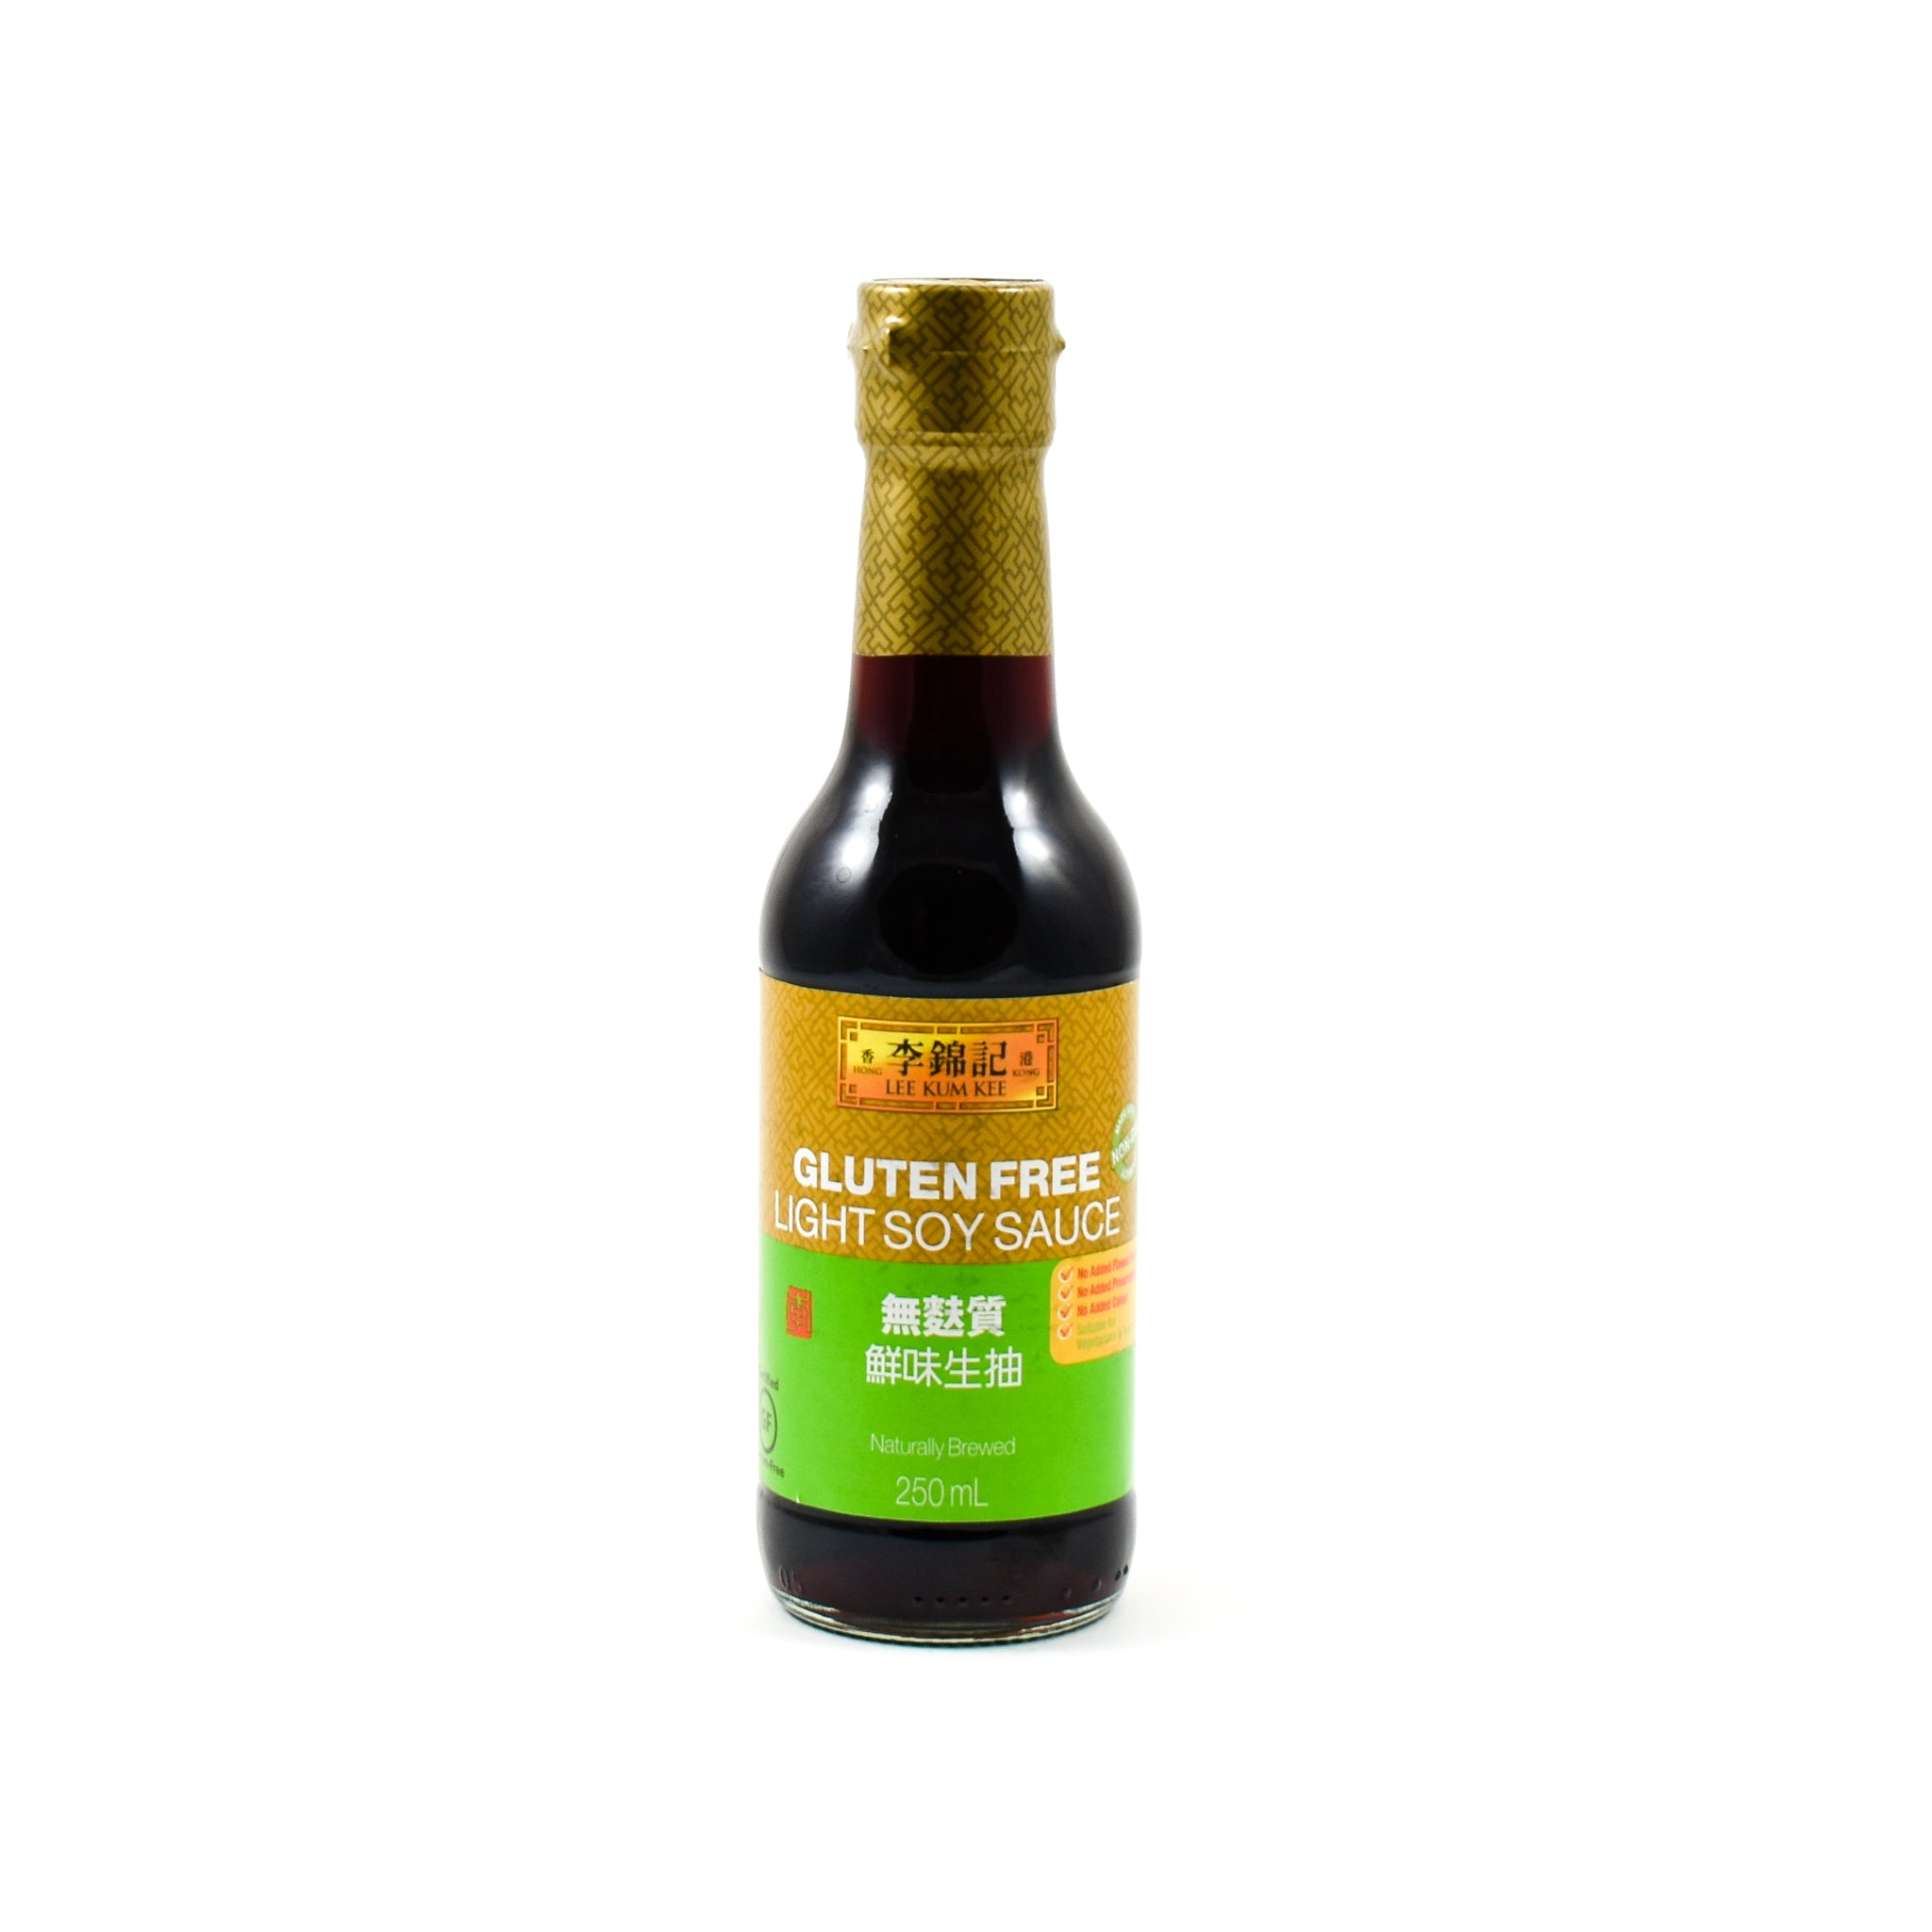 Lee Kum Kee Gluten Free Soy Sauce 250ml Ingredients Sauces & Condiments Asian Sauces & Condiments Chinese Food